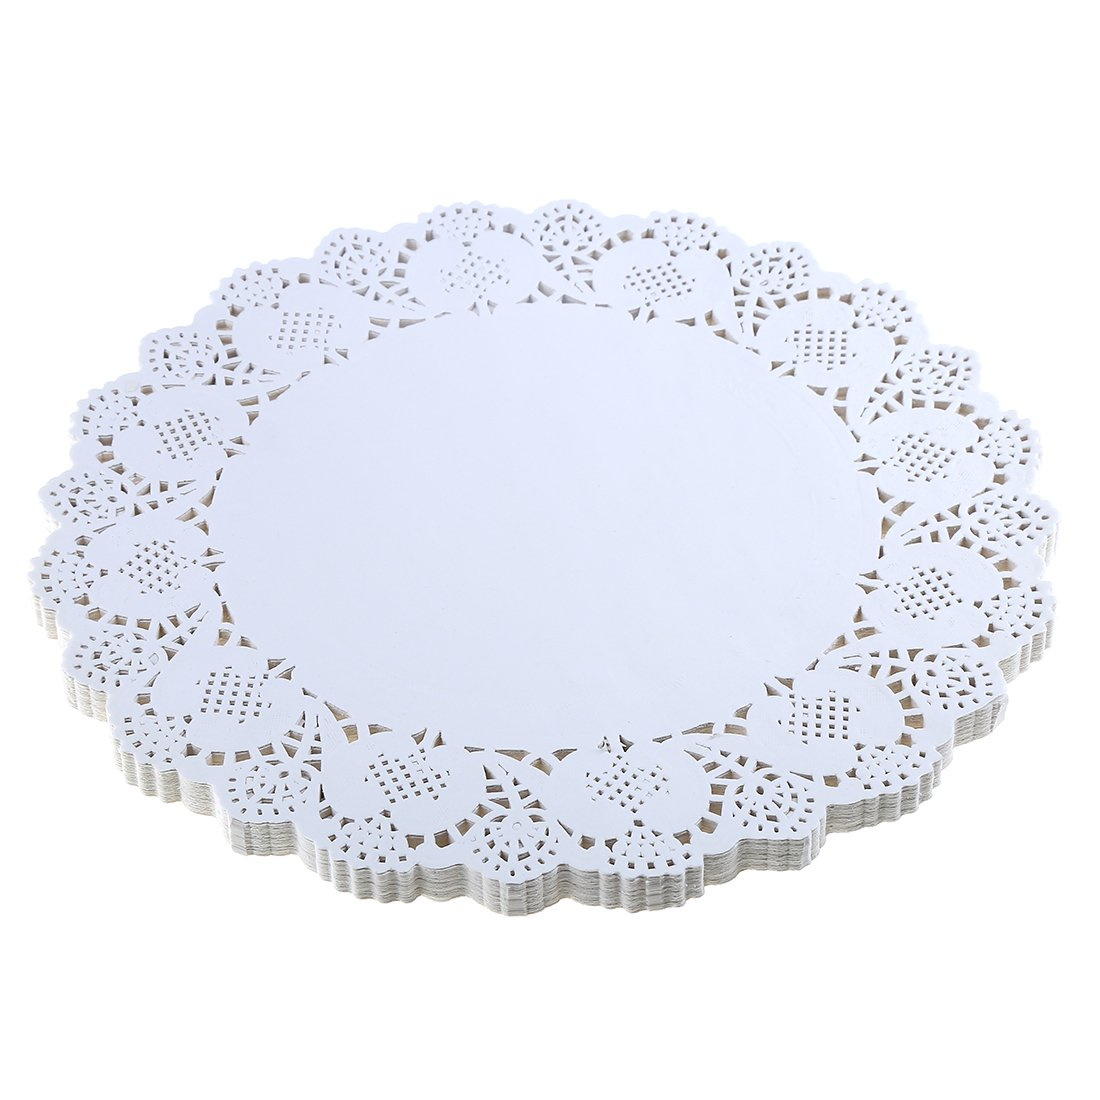 DECORA 12.5 Inch Round White Paper Lace Doilies for Wedding Table Decorations 100pcs by DECORA (Image #1)